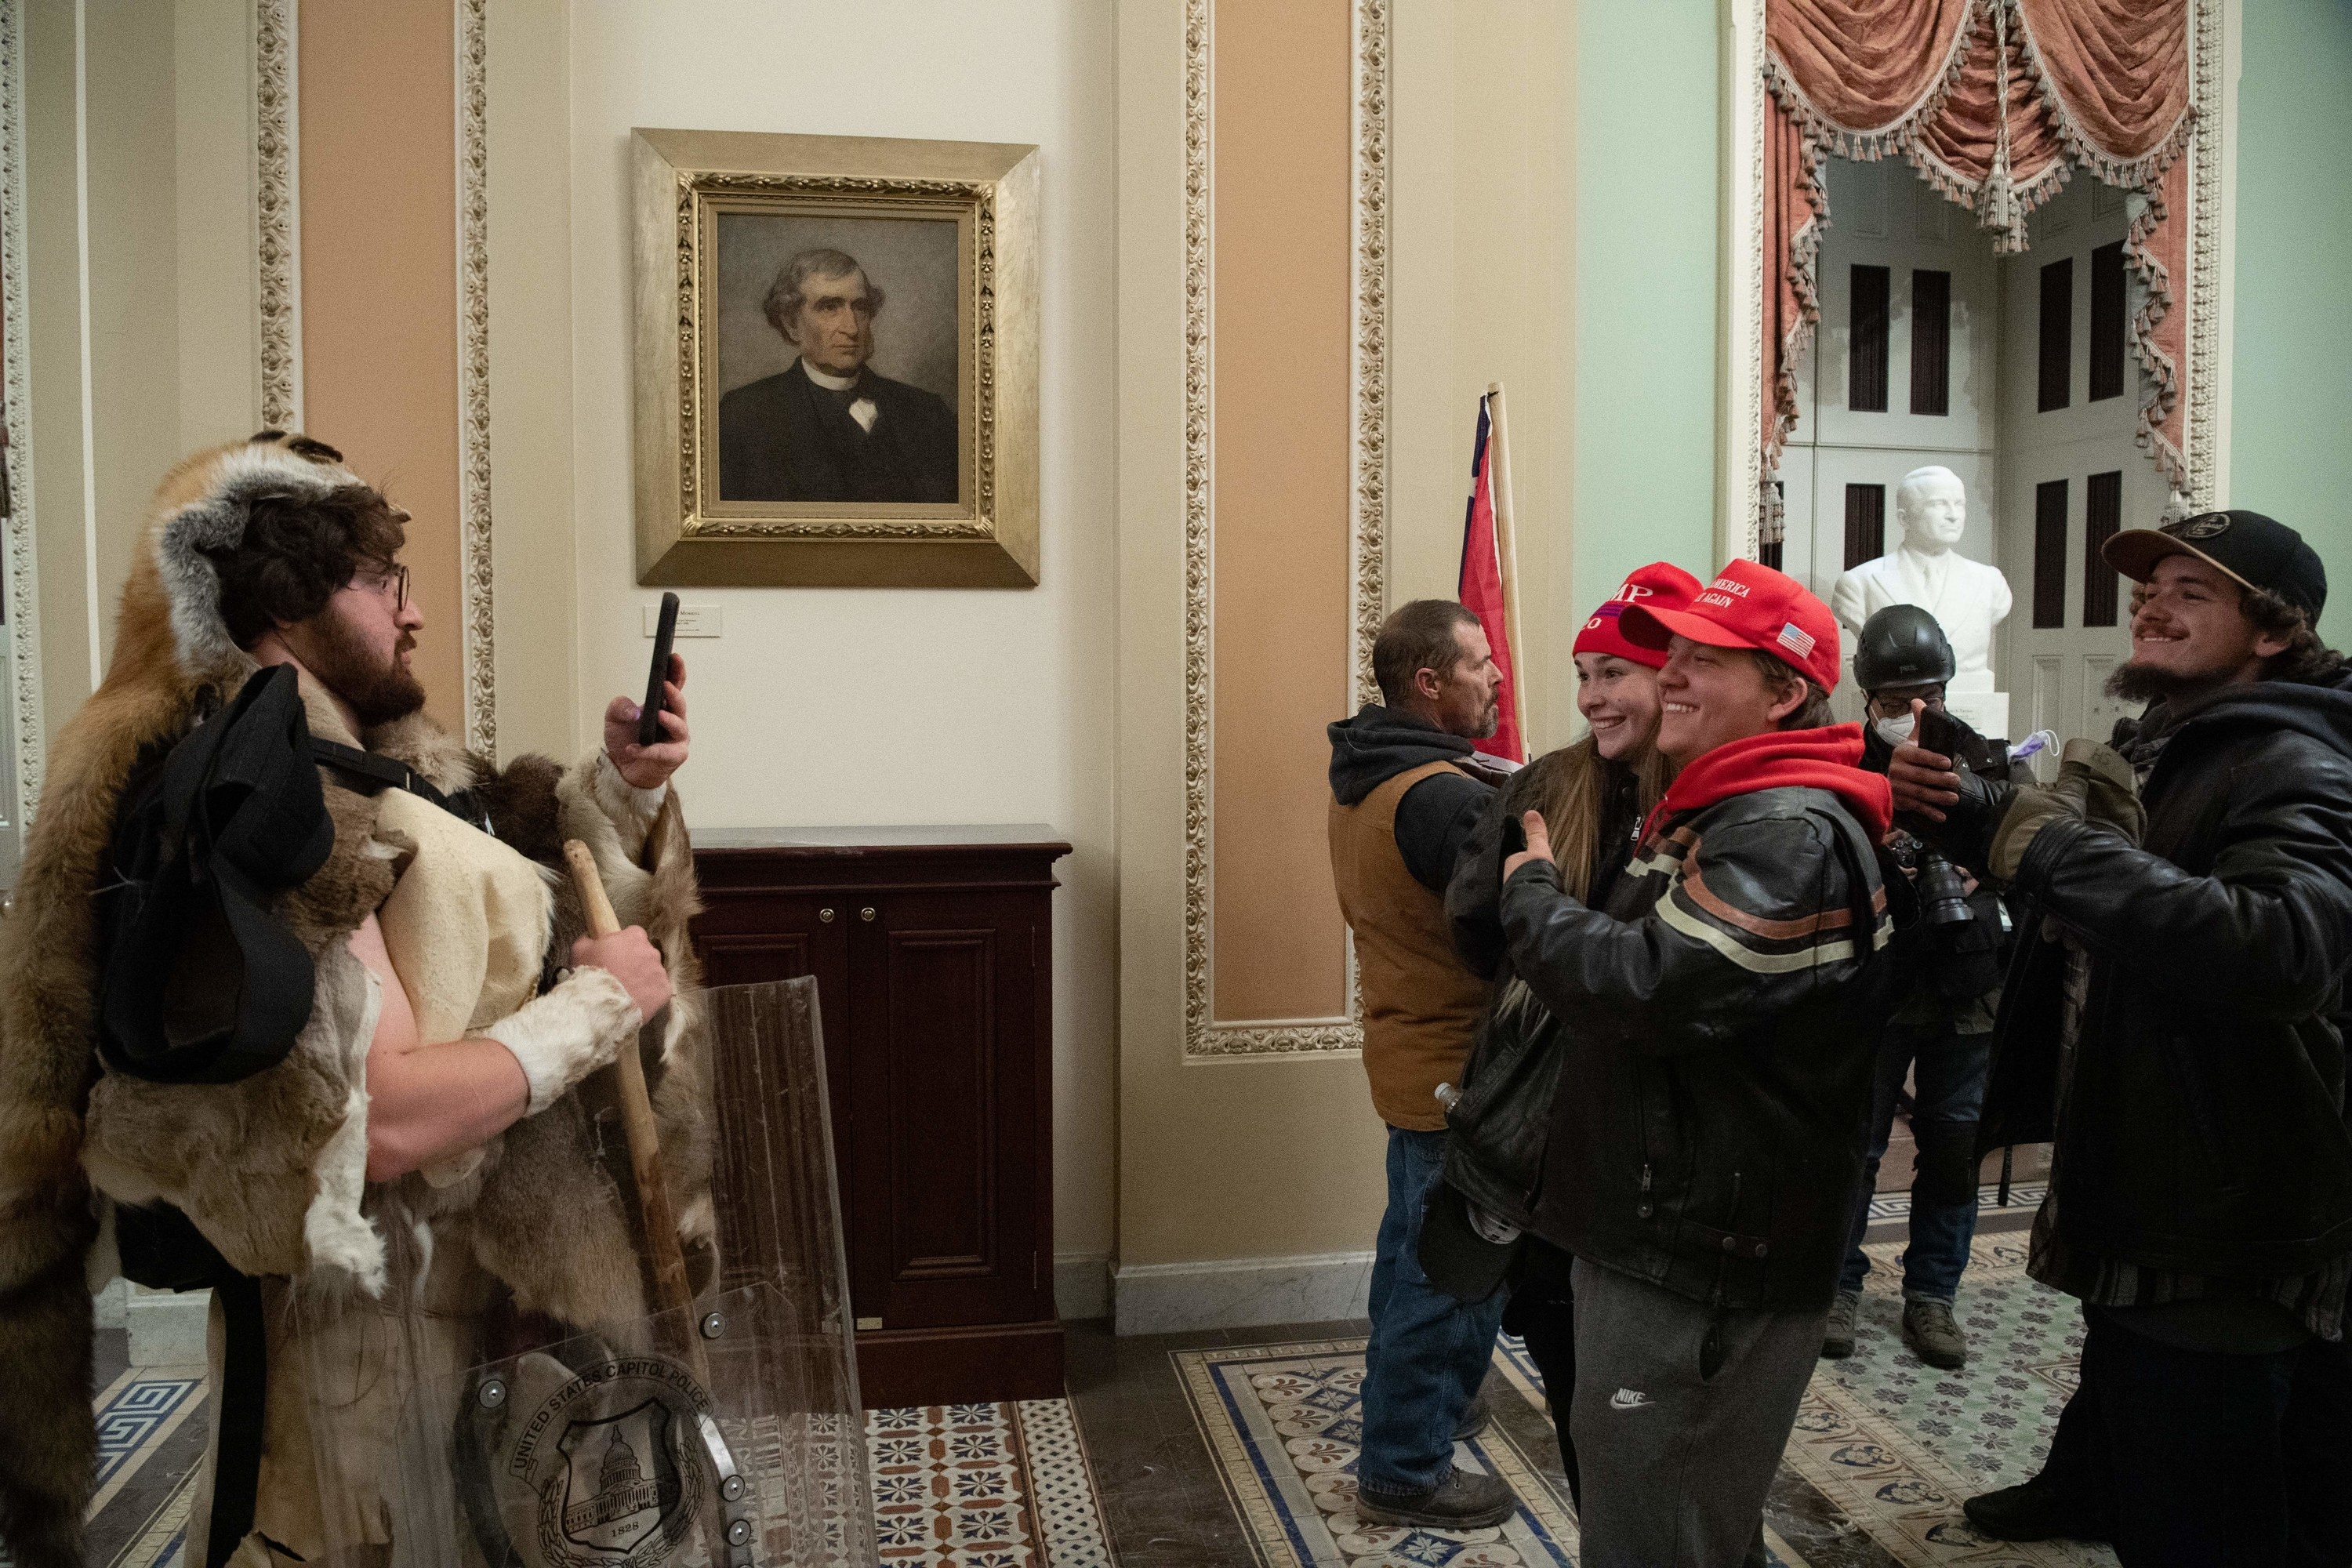 Trump supporters posing for a picture inside the Capitol